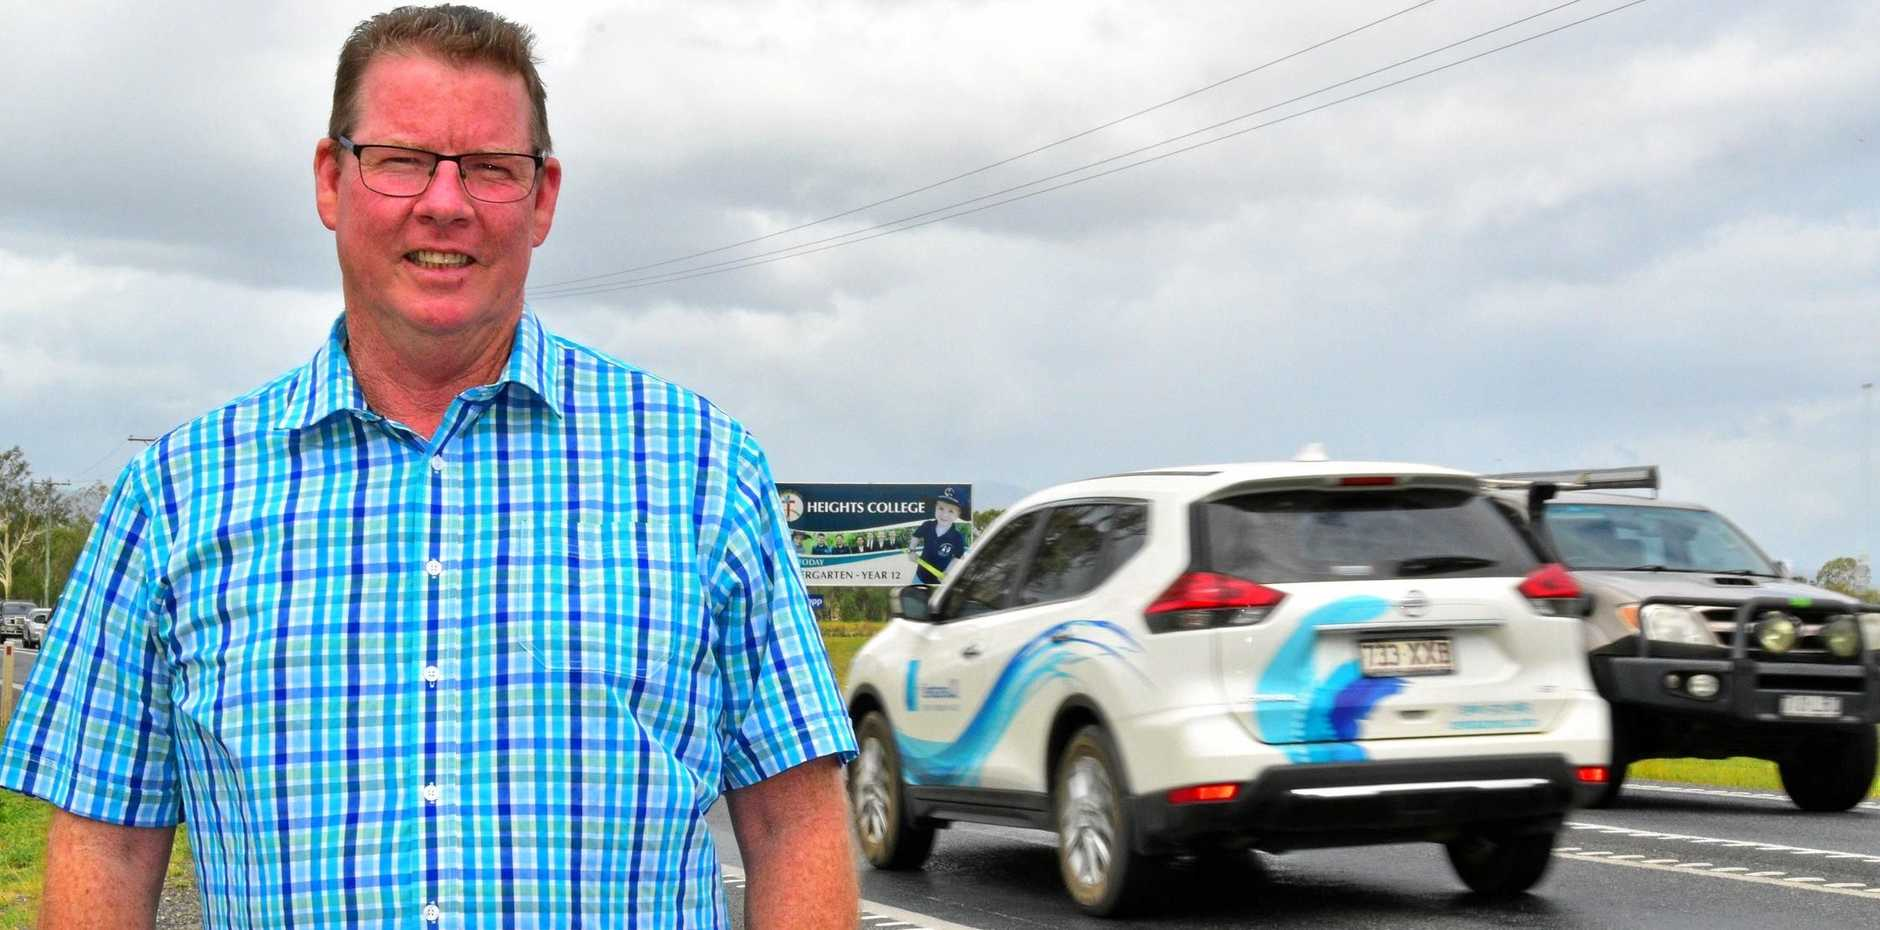 ROAD SUPPORT: Rockhampton MP Barry O'Rourke's wish was granted  when the state government released their budget which included $200 million for Rockhampton's Ring Road.